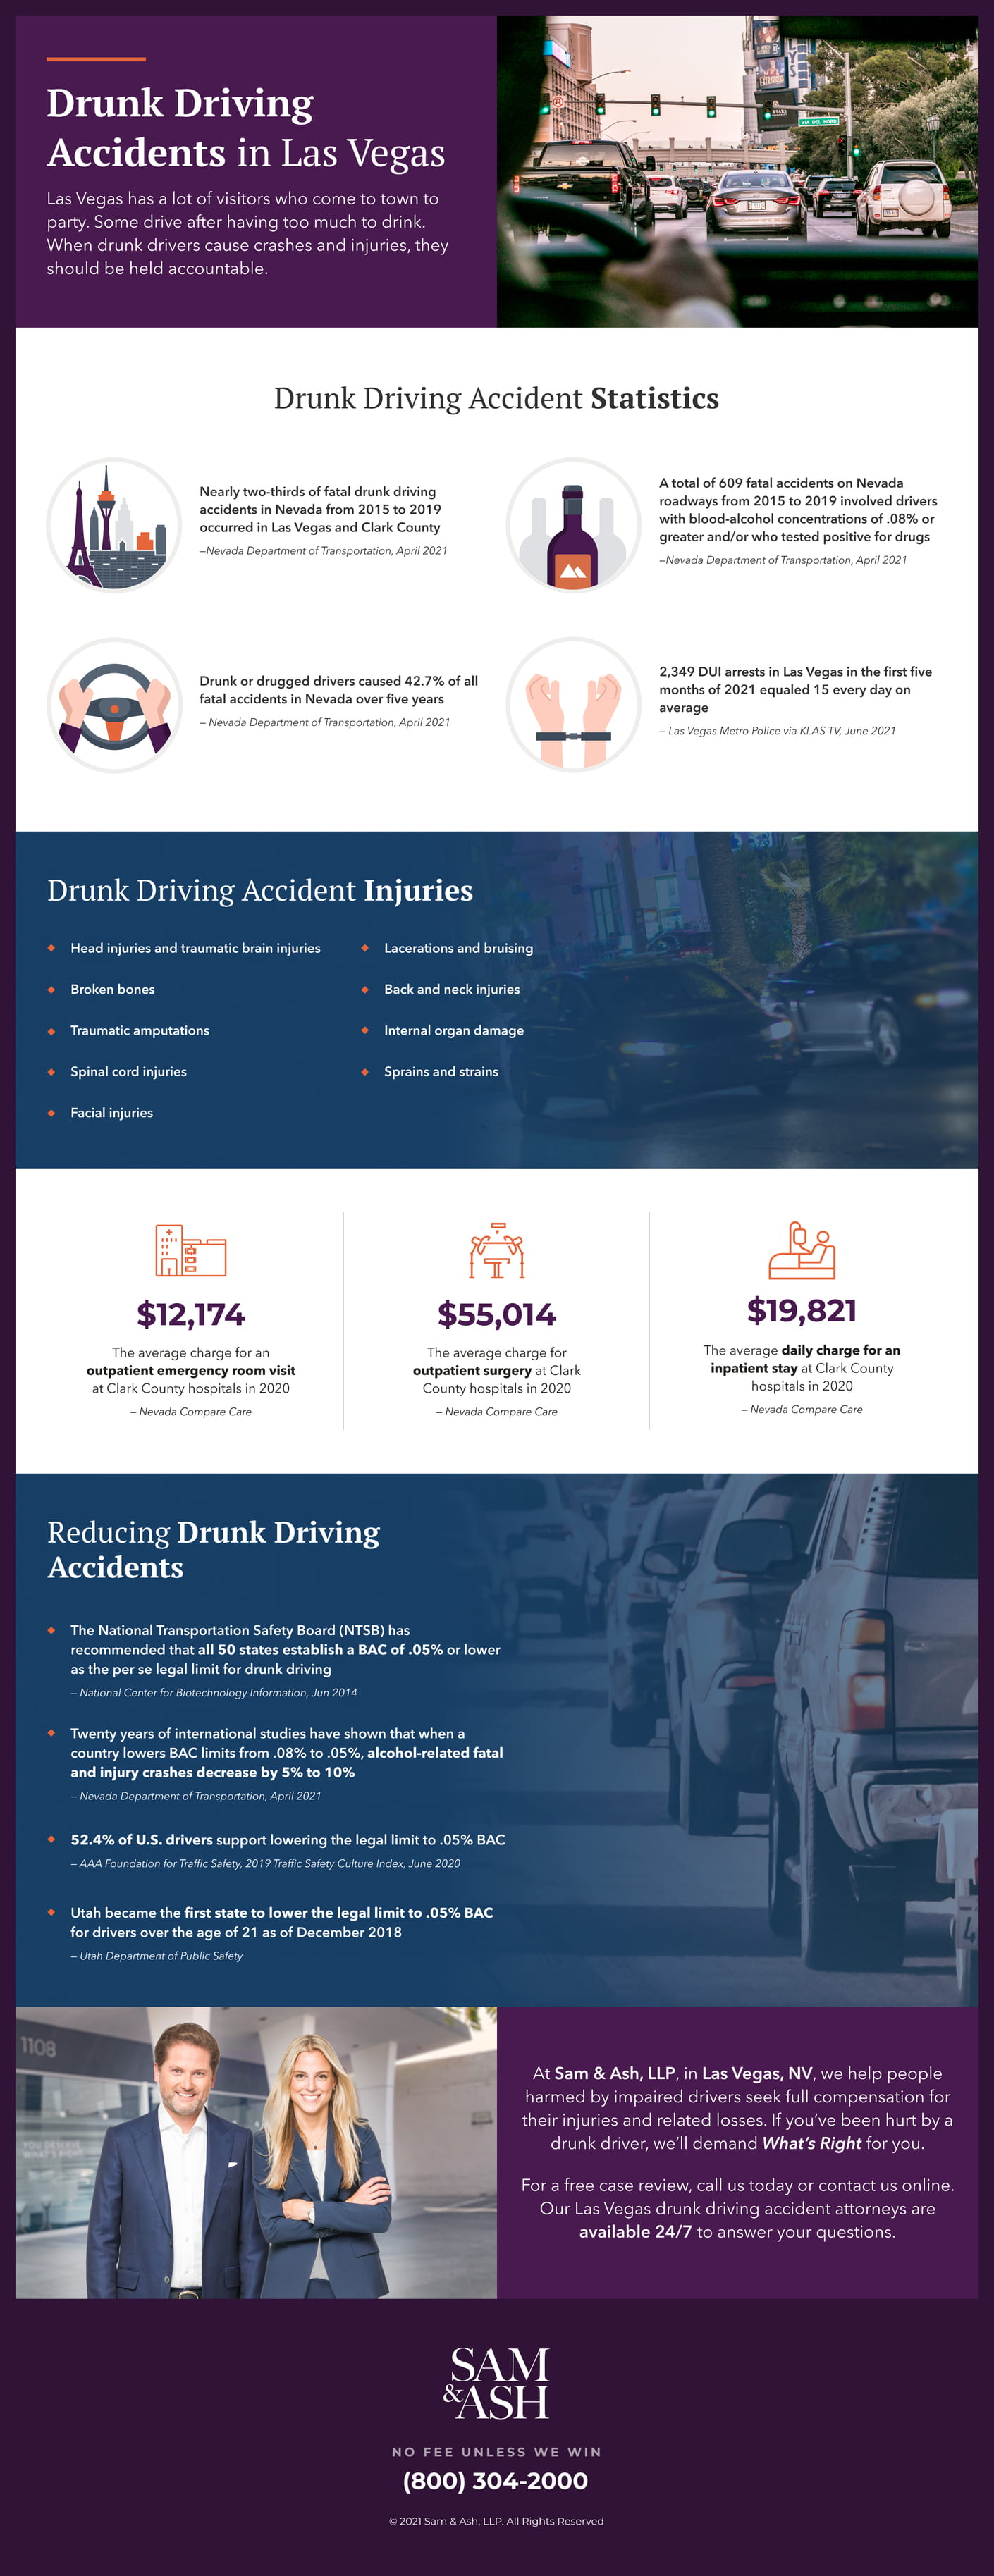 Drunk Driving Accidents in Las Vegas infographic